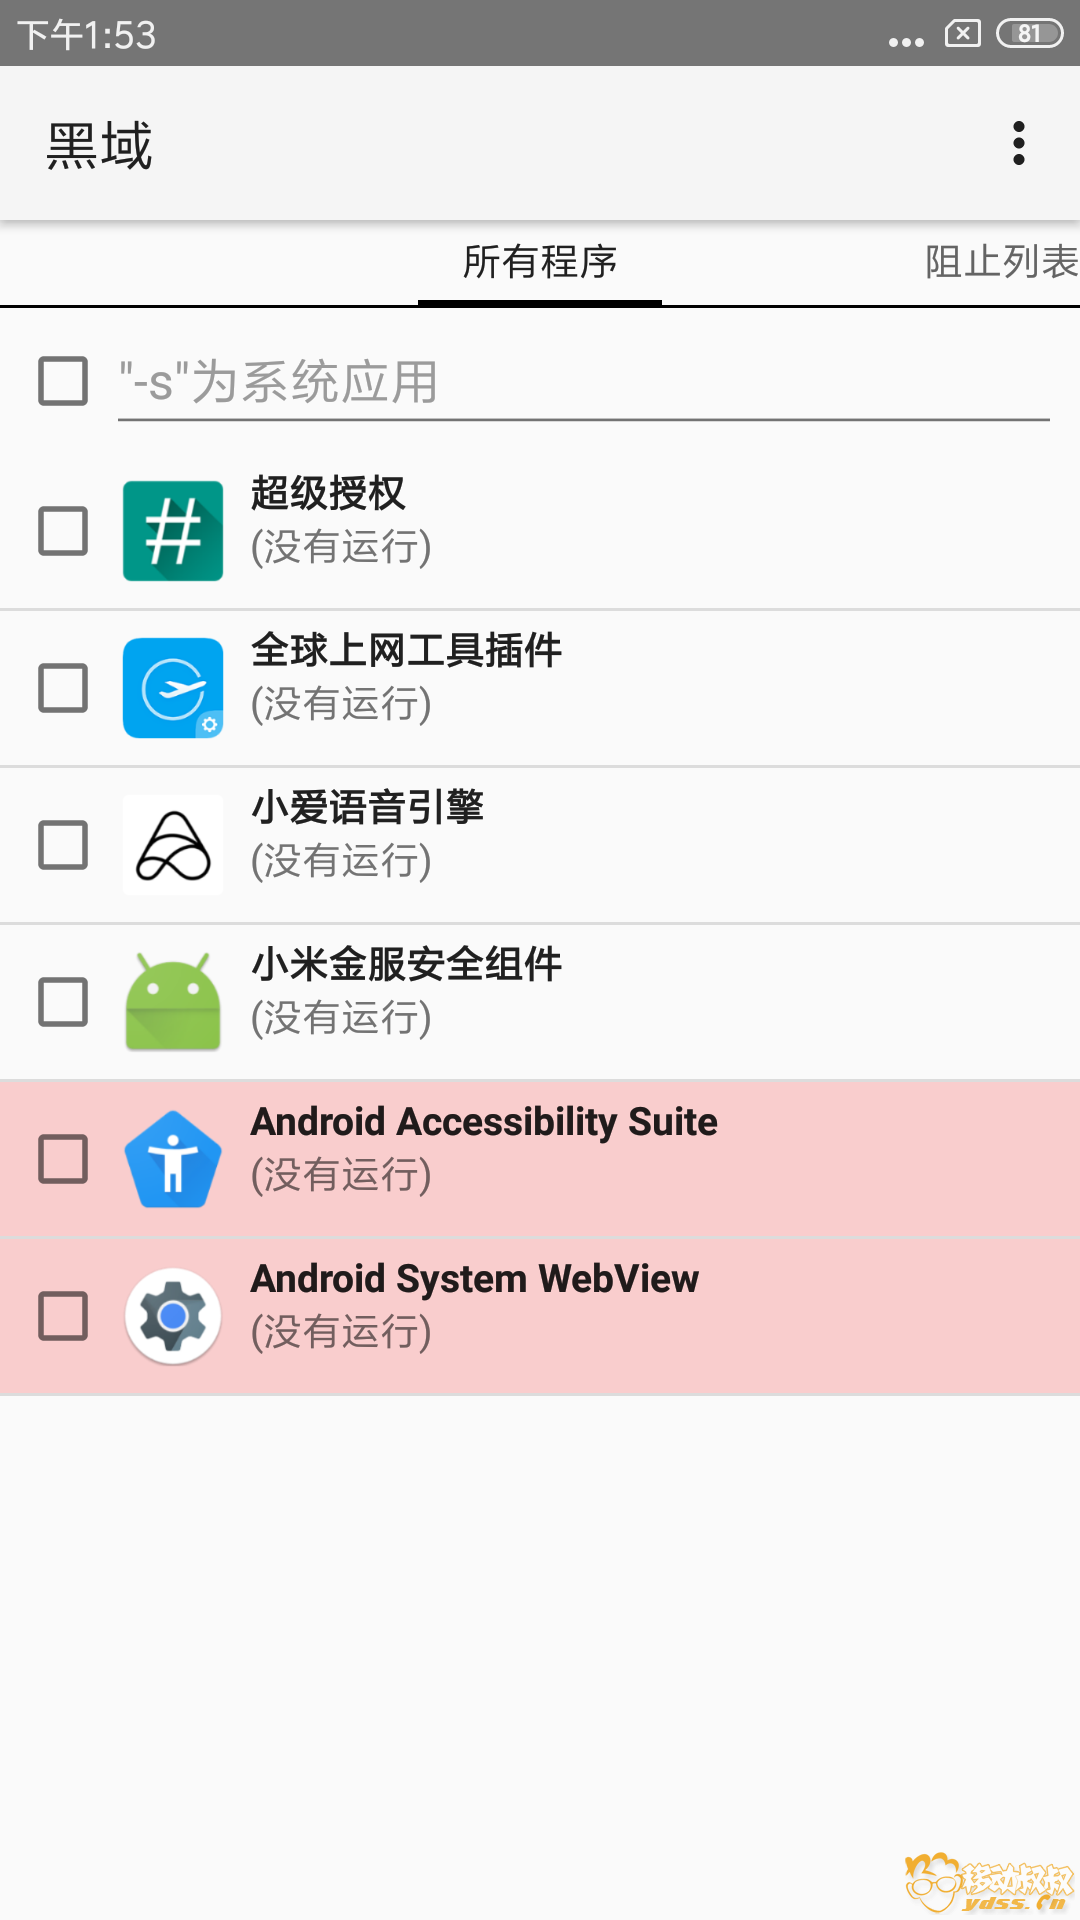 Screenshot_2019-05-22-13-53-09-218_me.piebridge.prevent.png